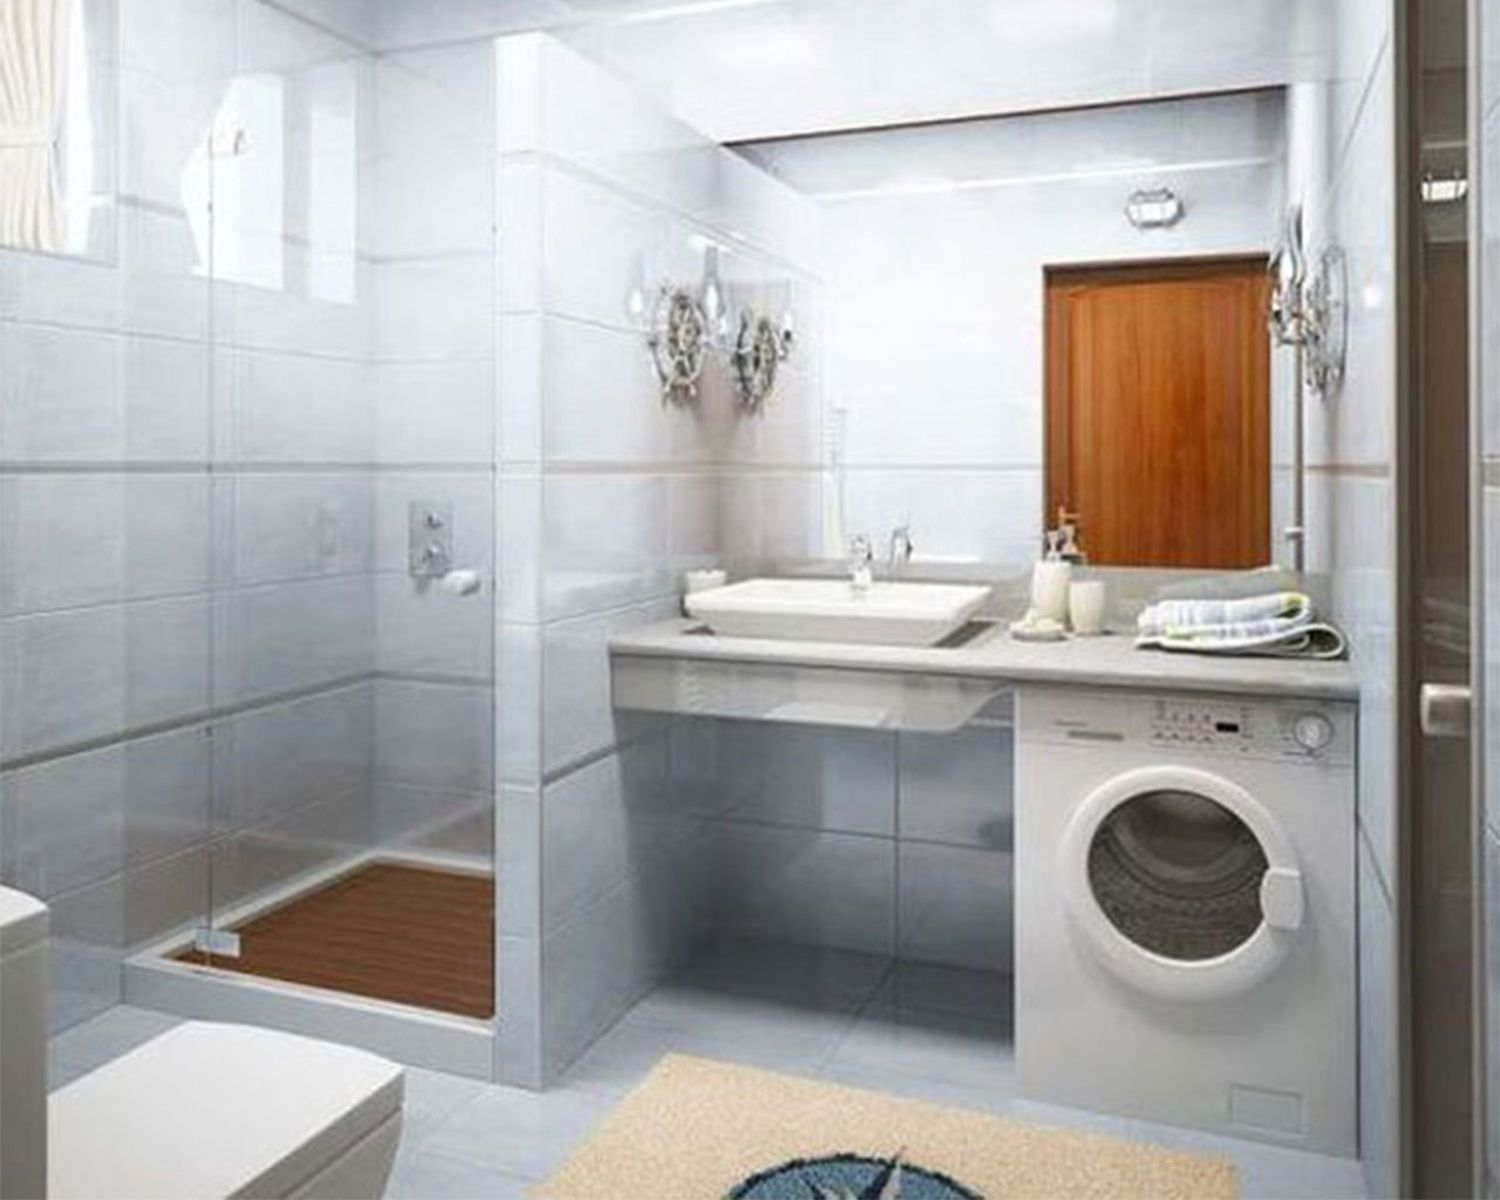 Srilankan bathroom designs find best latest srilankan bathroom designs for your pc desktop background mobile